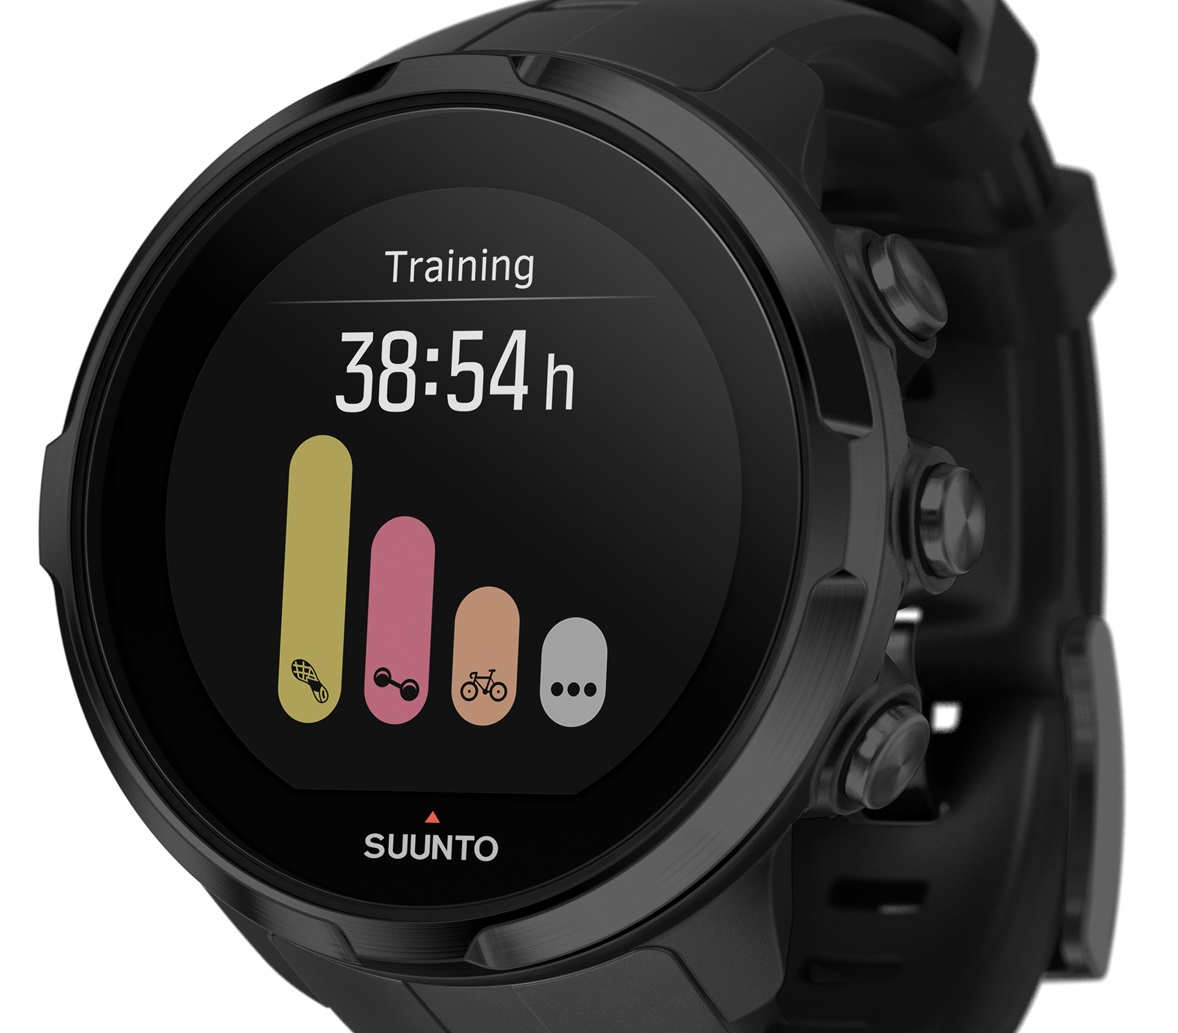 Suunto Spartansport Sportuhr